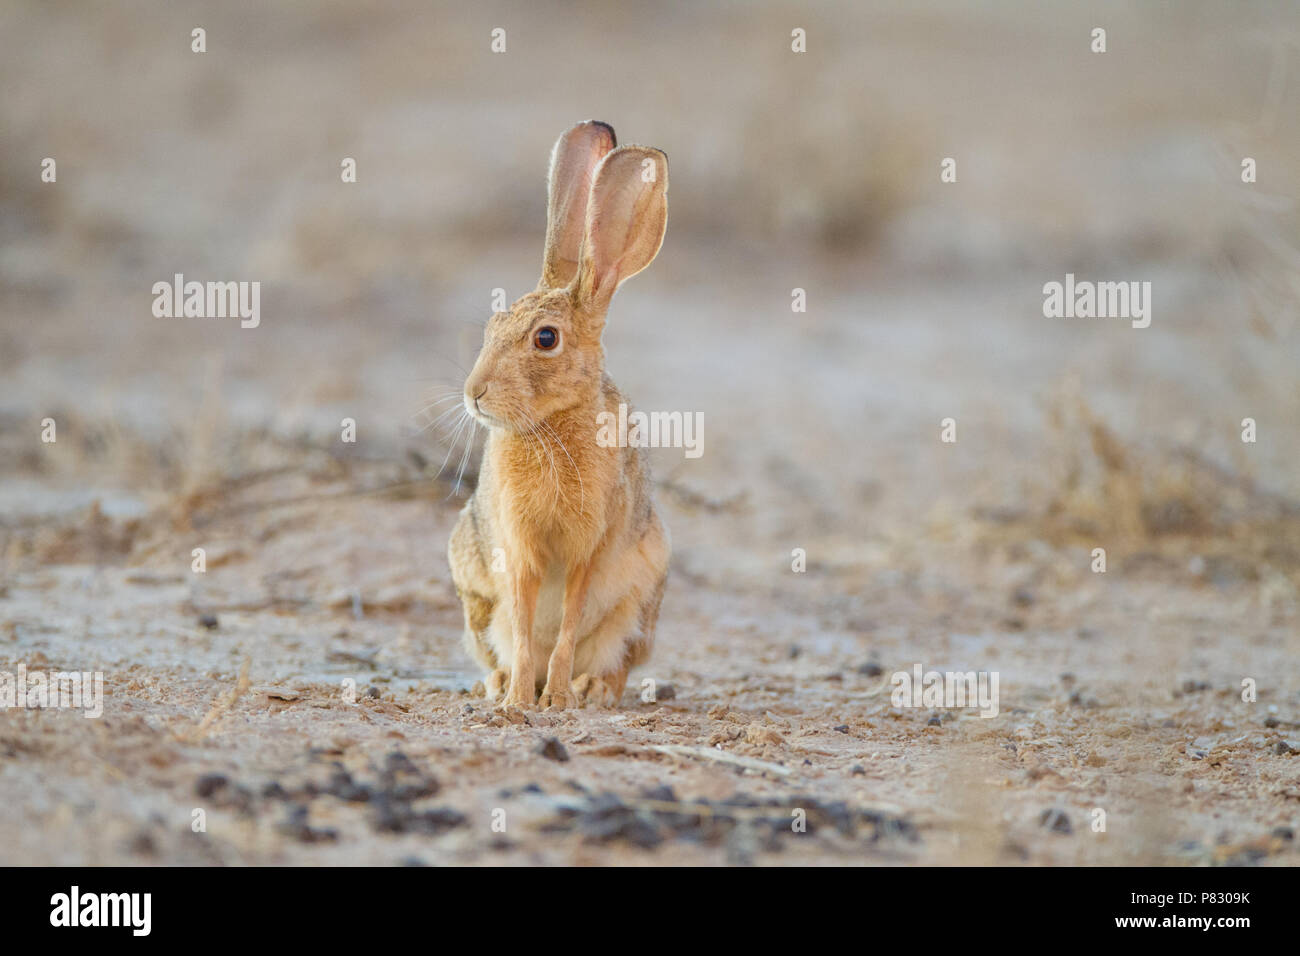 Cape hare in Kgalagadi Transfrontier Park Africa - Stock Image